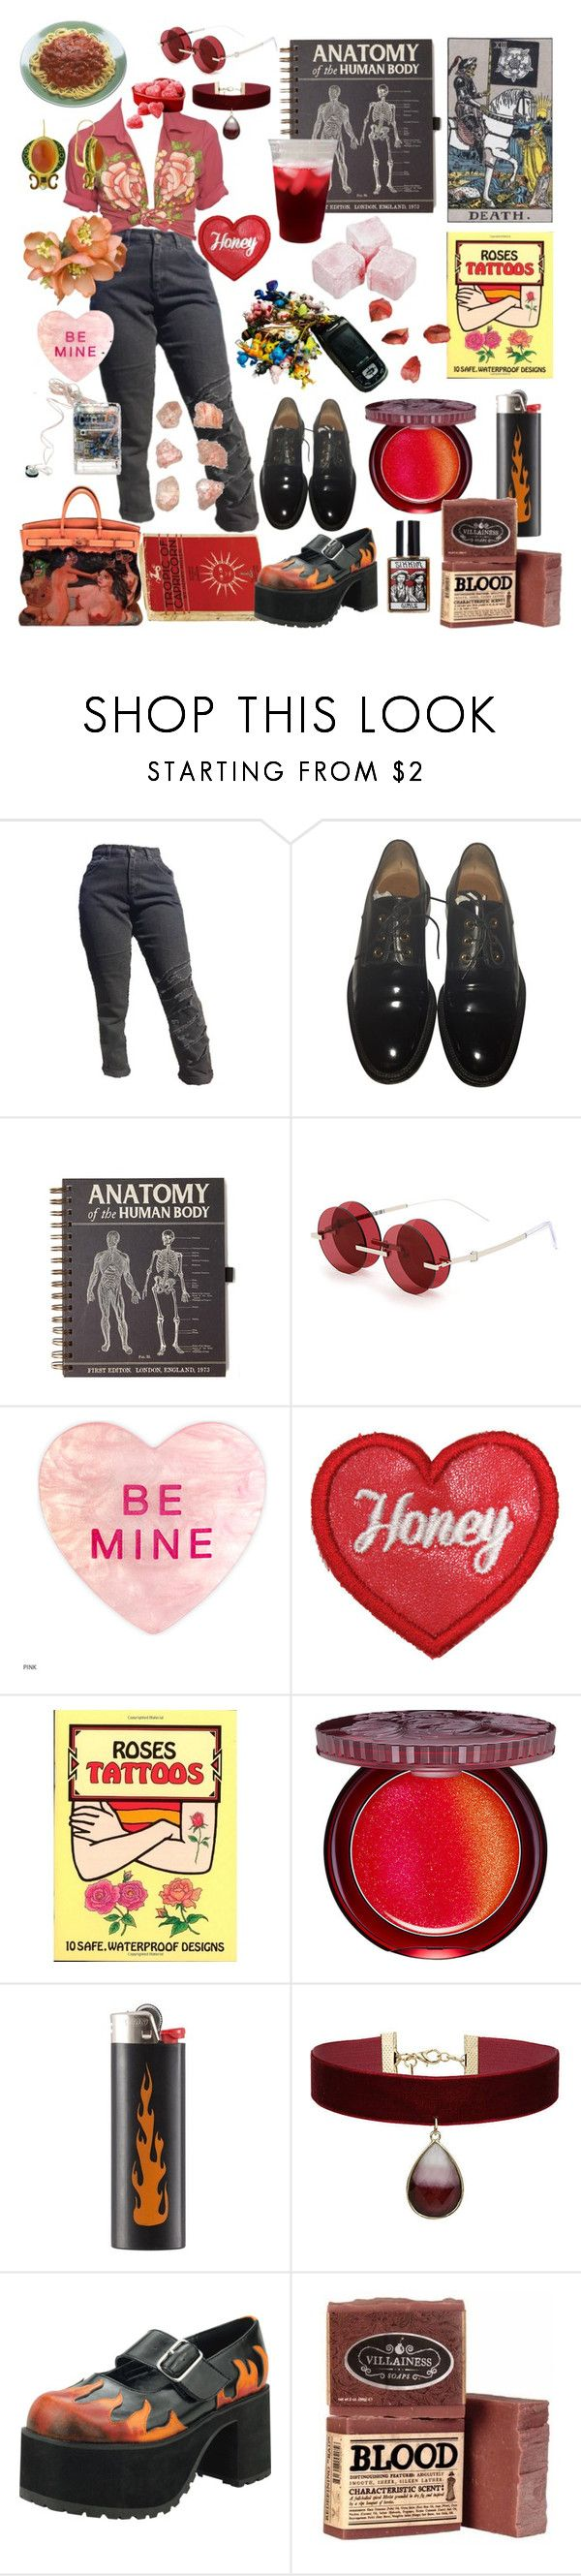 """""""rosie"""" by aintnodisco ❤ liked on Polyvore featuring Givenchy, Percy Lau, Paul & Joe, Sony, Topshop, T.U.K., Pink, roses and blackandred"""